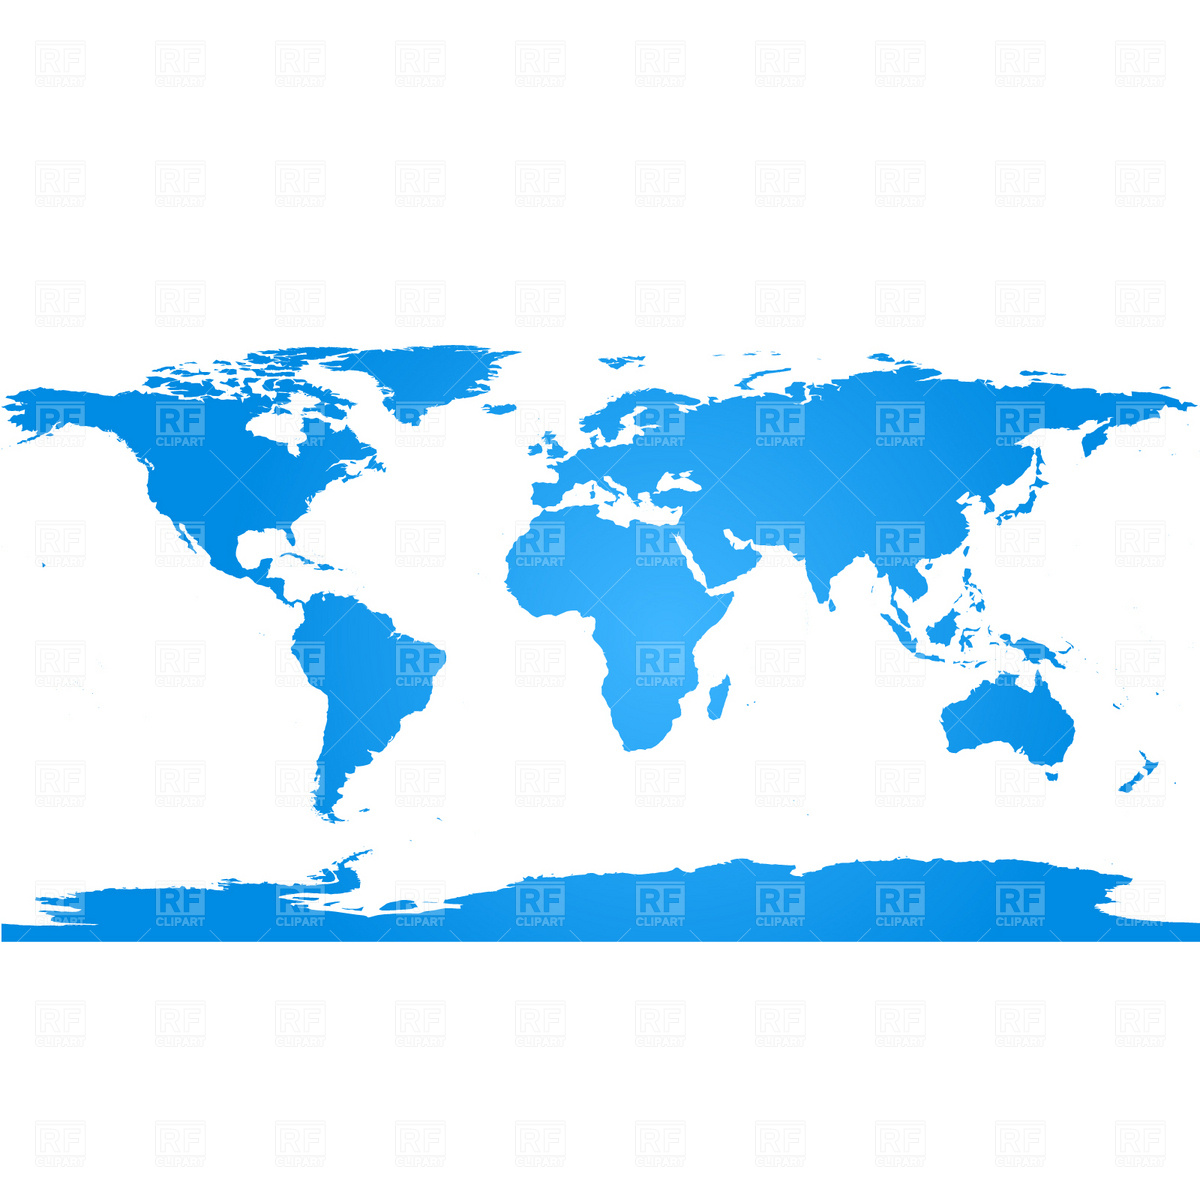 World map with continents Vector Image #1888.